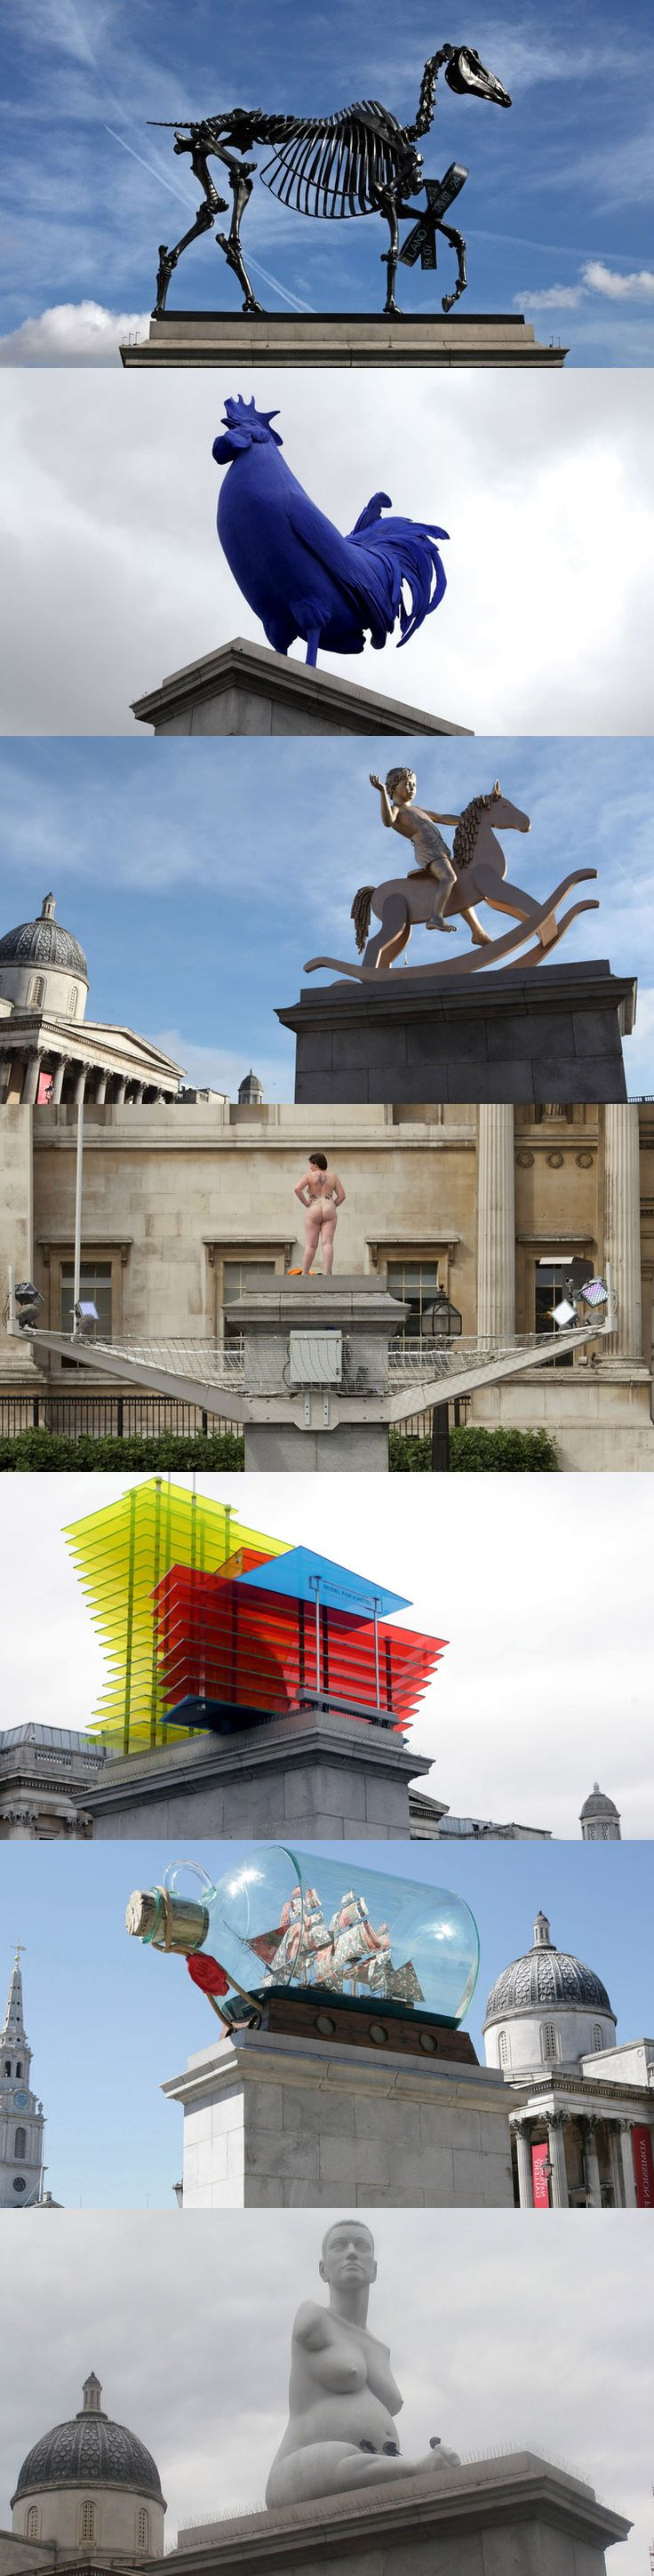 VOTE for your favourite artwork from the Fourth Plinth so far: http://www.timeout.com/london/art/whats-londons-favourite-fourth-plinth-artwork